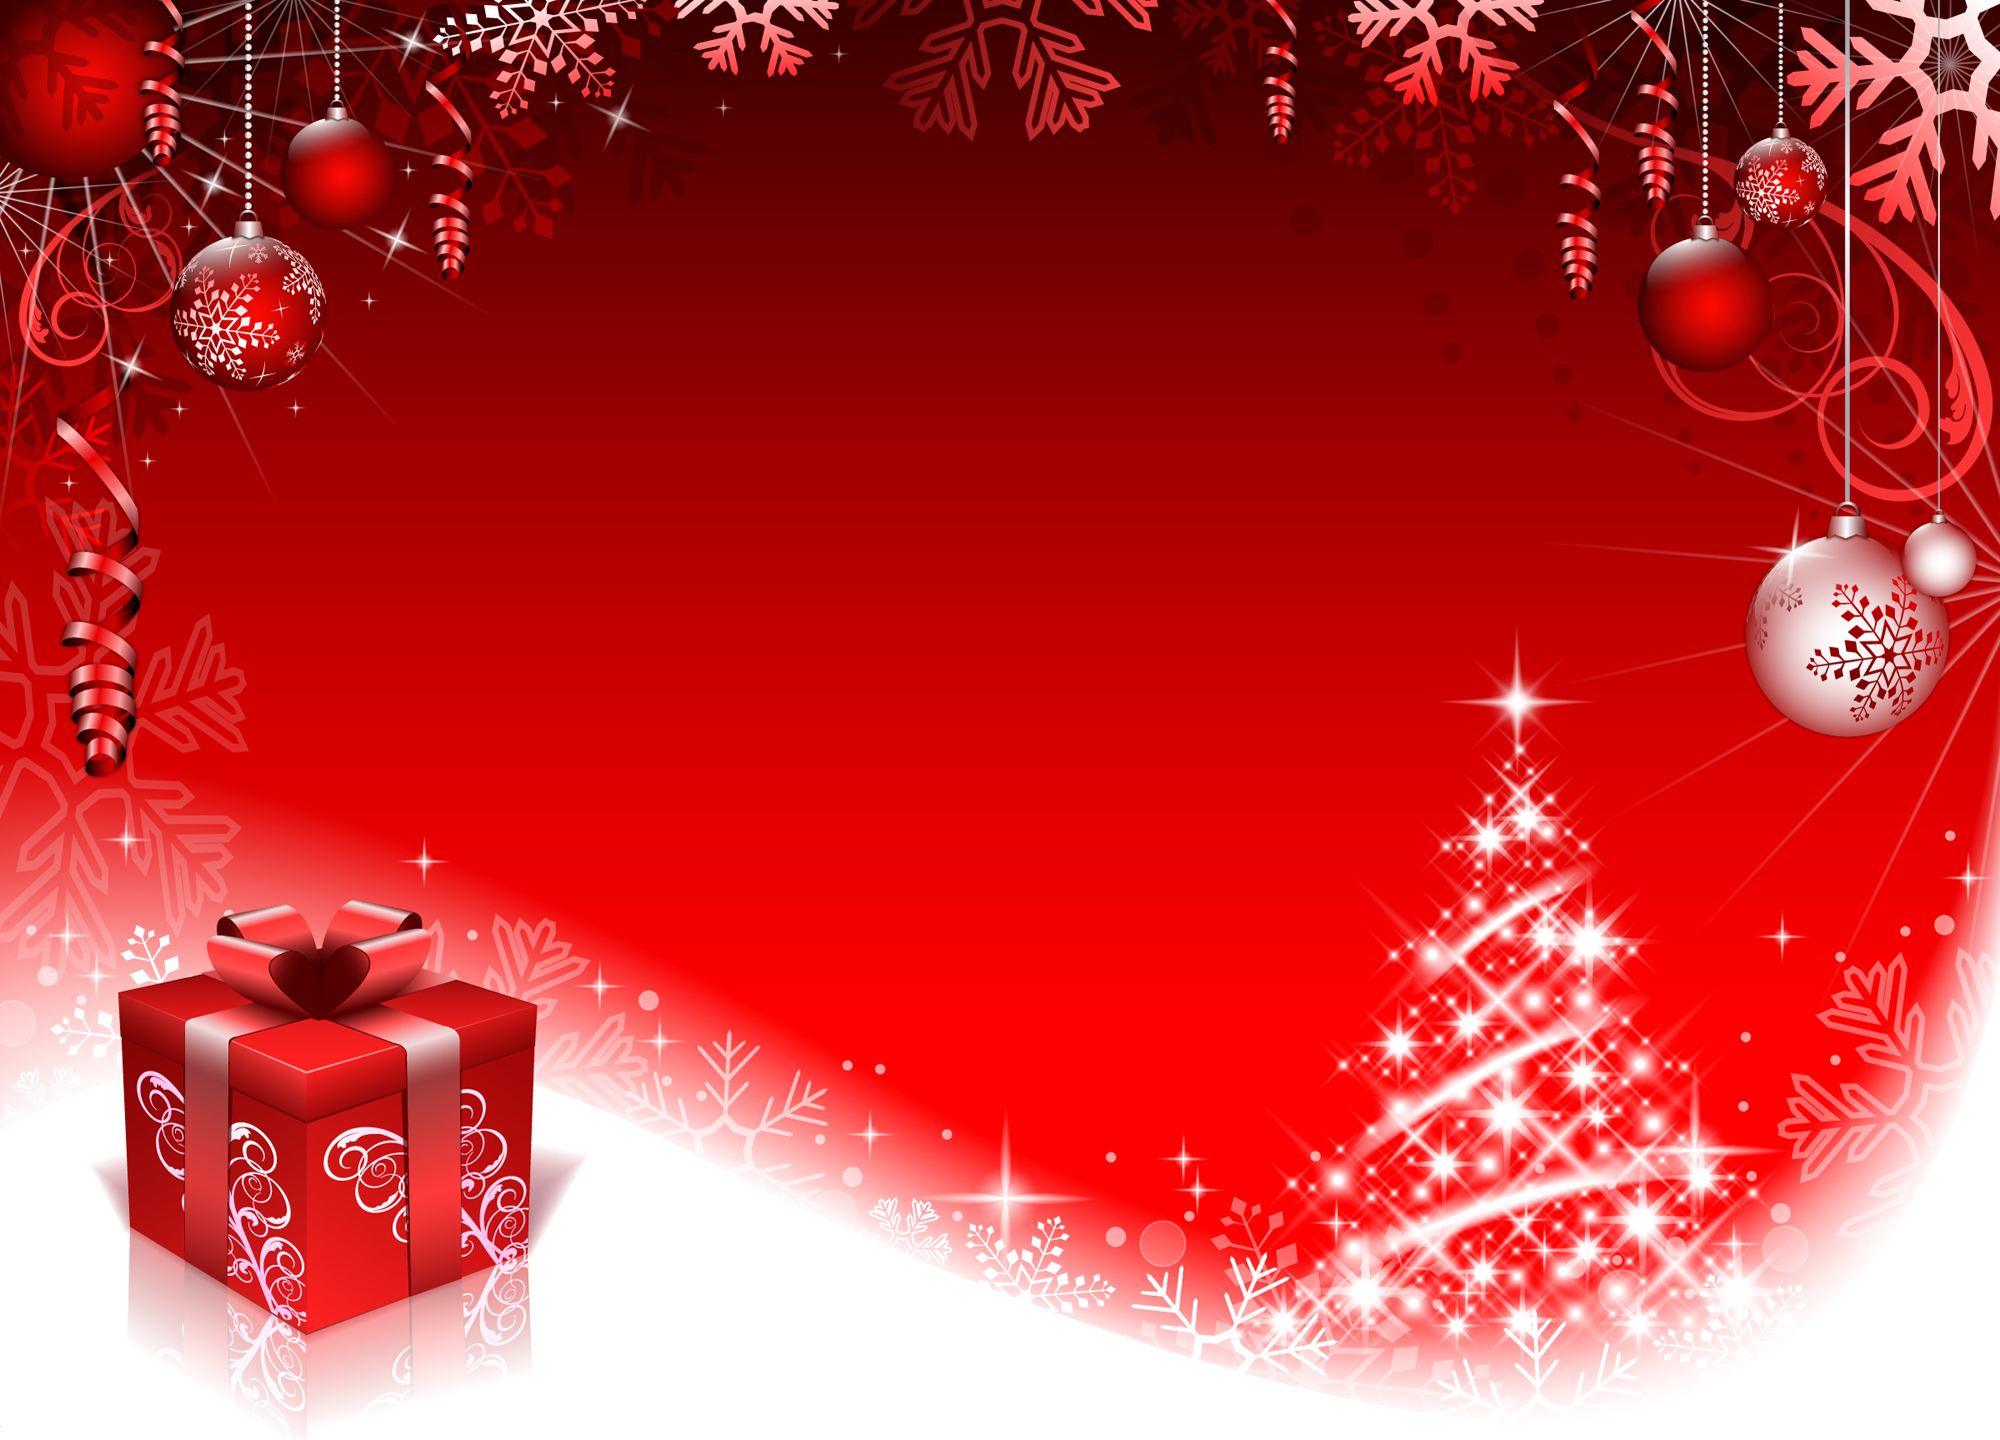 Free Red Christmas Backgrounds for Photoshop